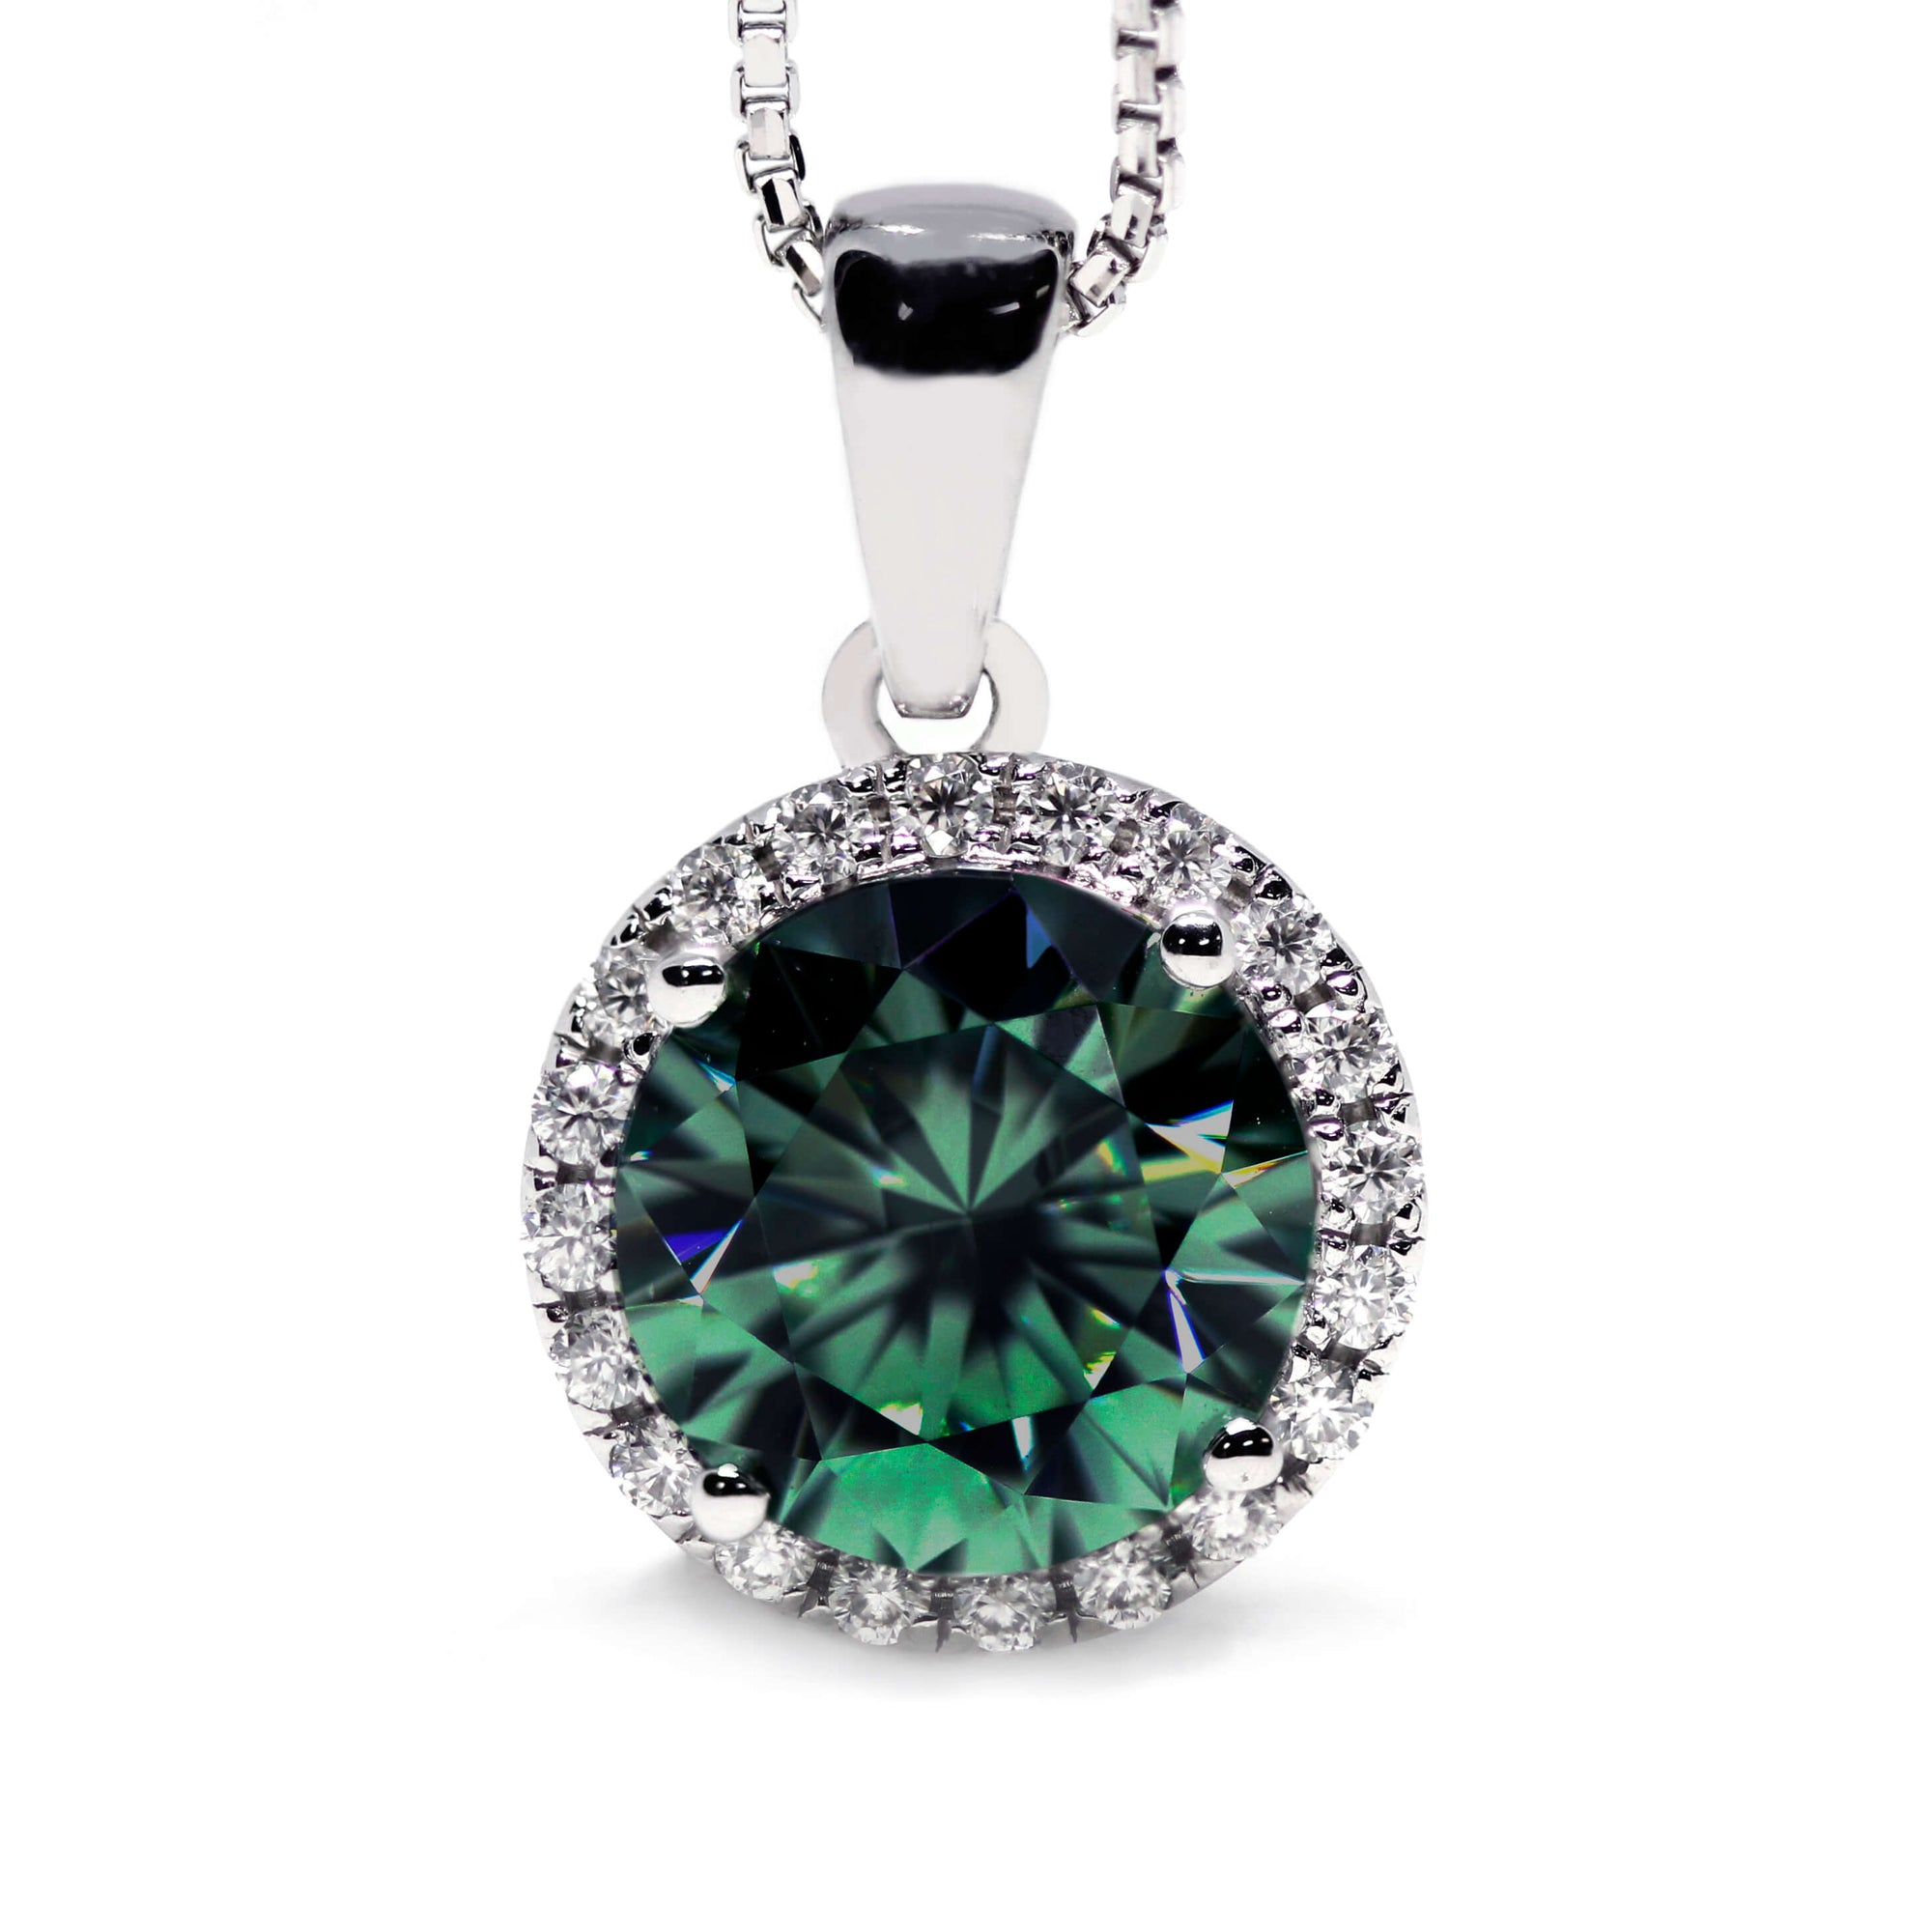 2 Carat Dark Green Moissanite Round Halo 18K Gold Pendant